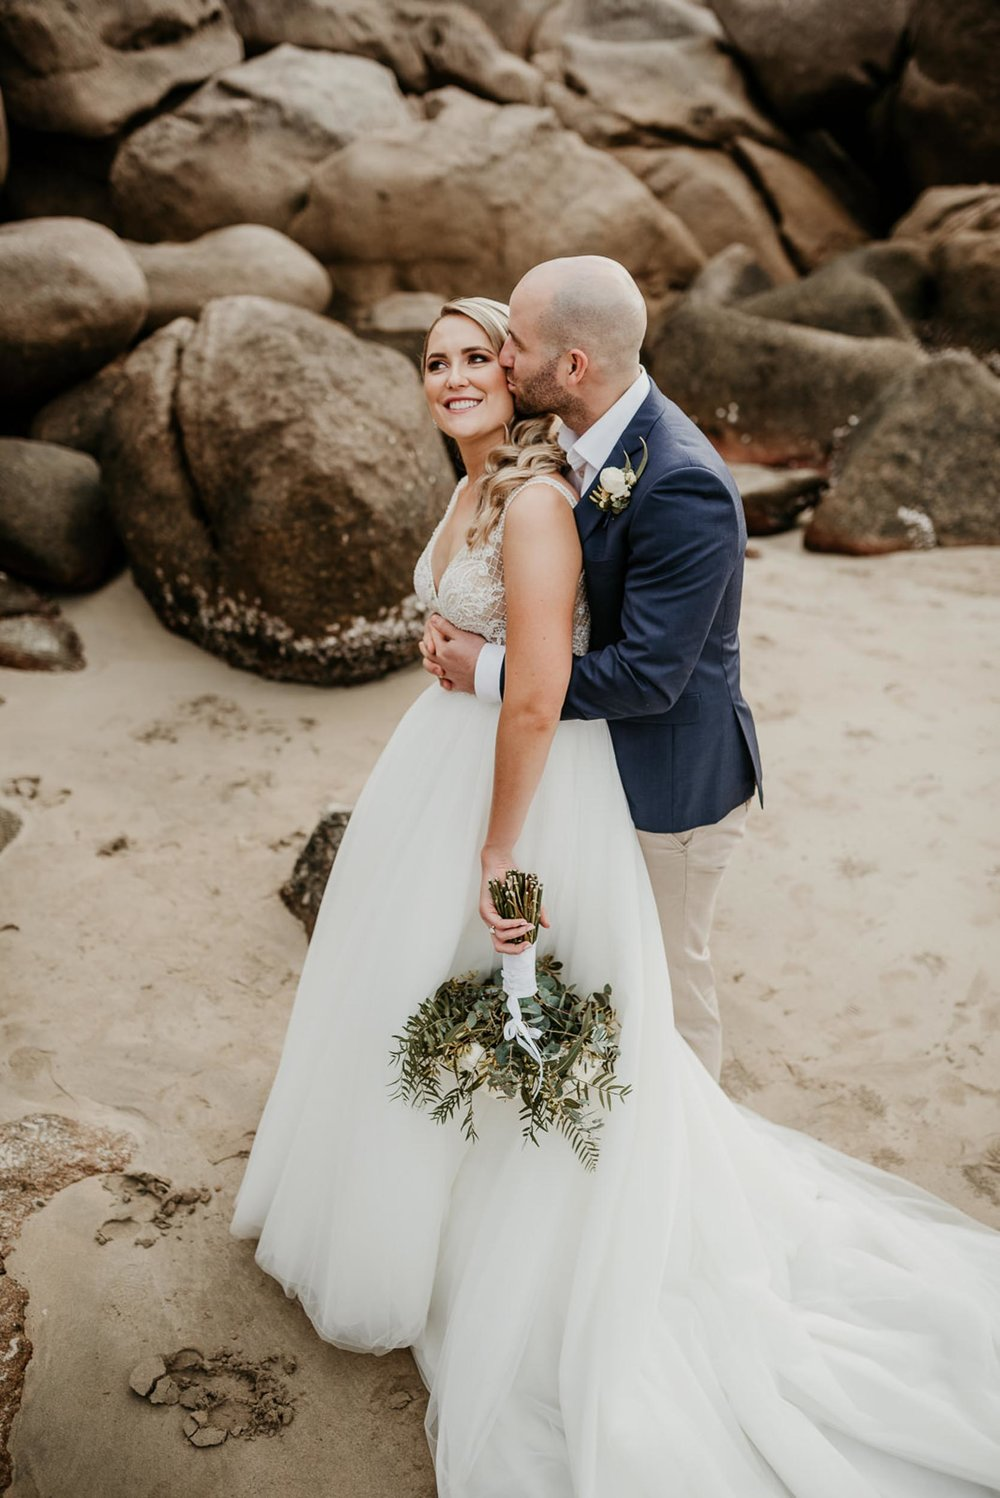 The Raw Photographer - Townsville Wedding Photographer - Magnetic Island - Destination Wedding - Dress White Lily Couture Bridal Nicole Milano-32.jpg